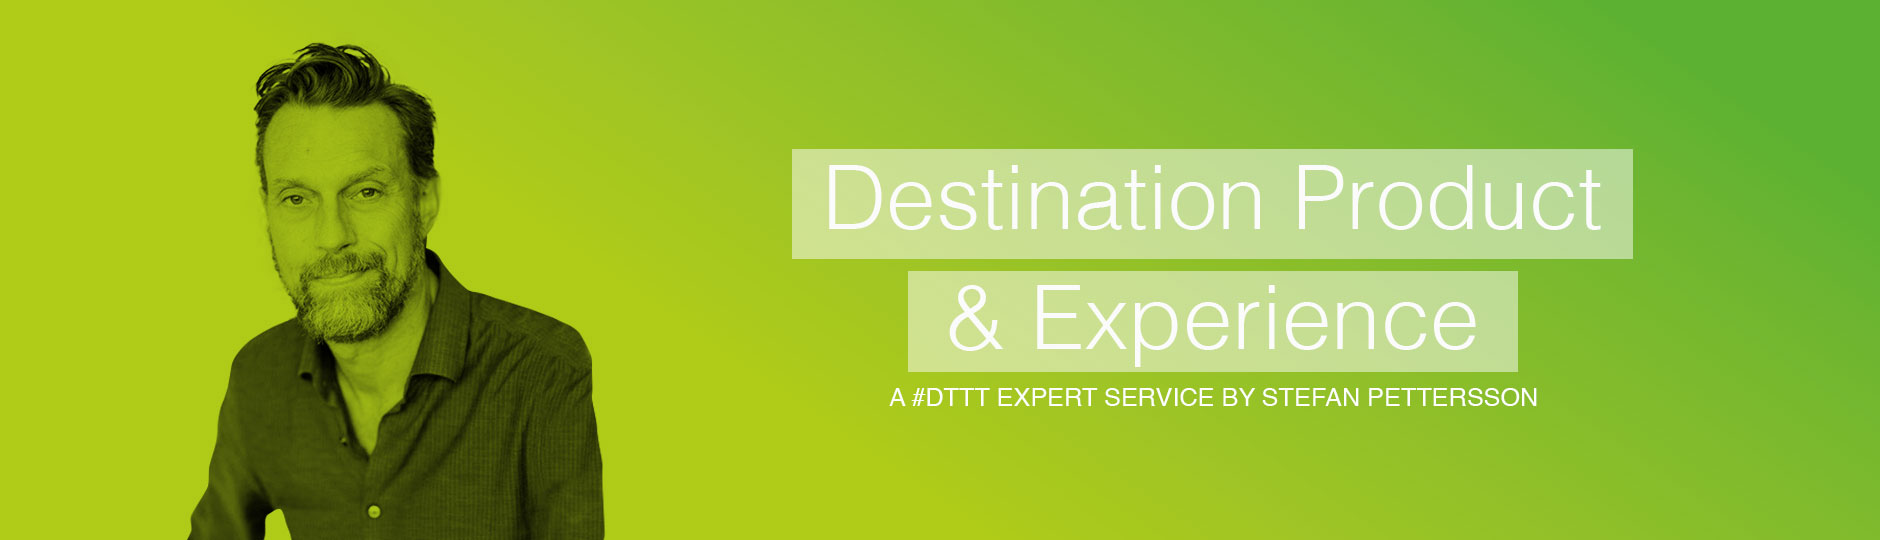 Destination-product-&-experience-header